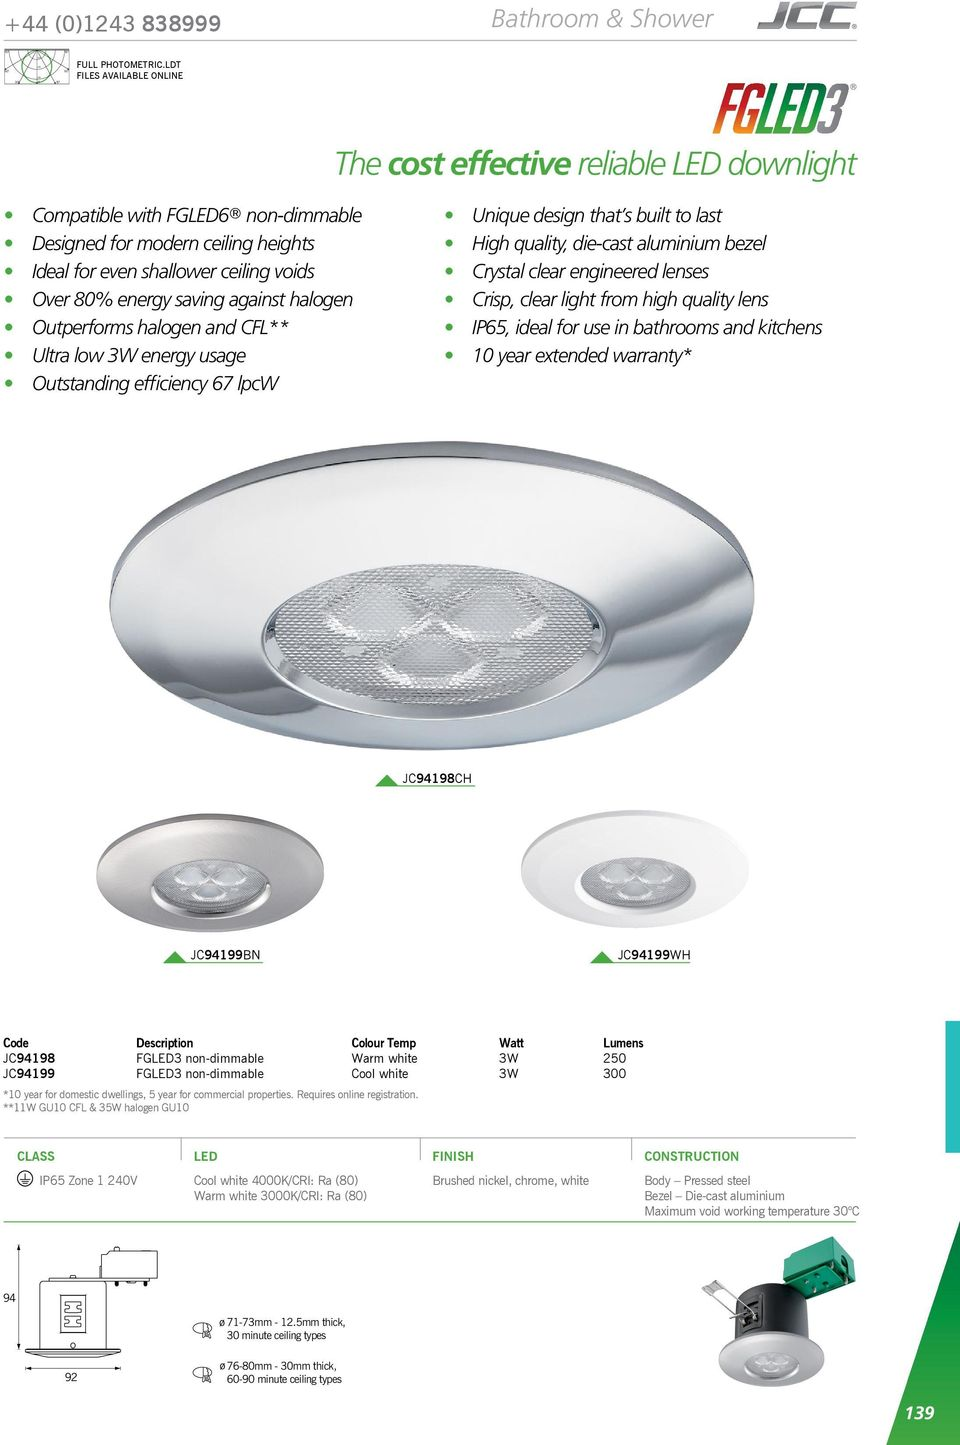 saving against halogen Outperforms halogen and CFL** Ultra low 3W energy usage Outstanding efficiency 67 lpcw Unique design that s built to last High quality, die-cast aluminium bezel Crystal clear